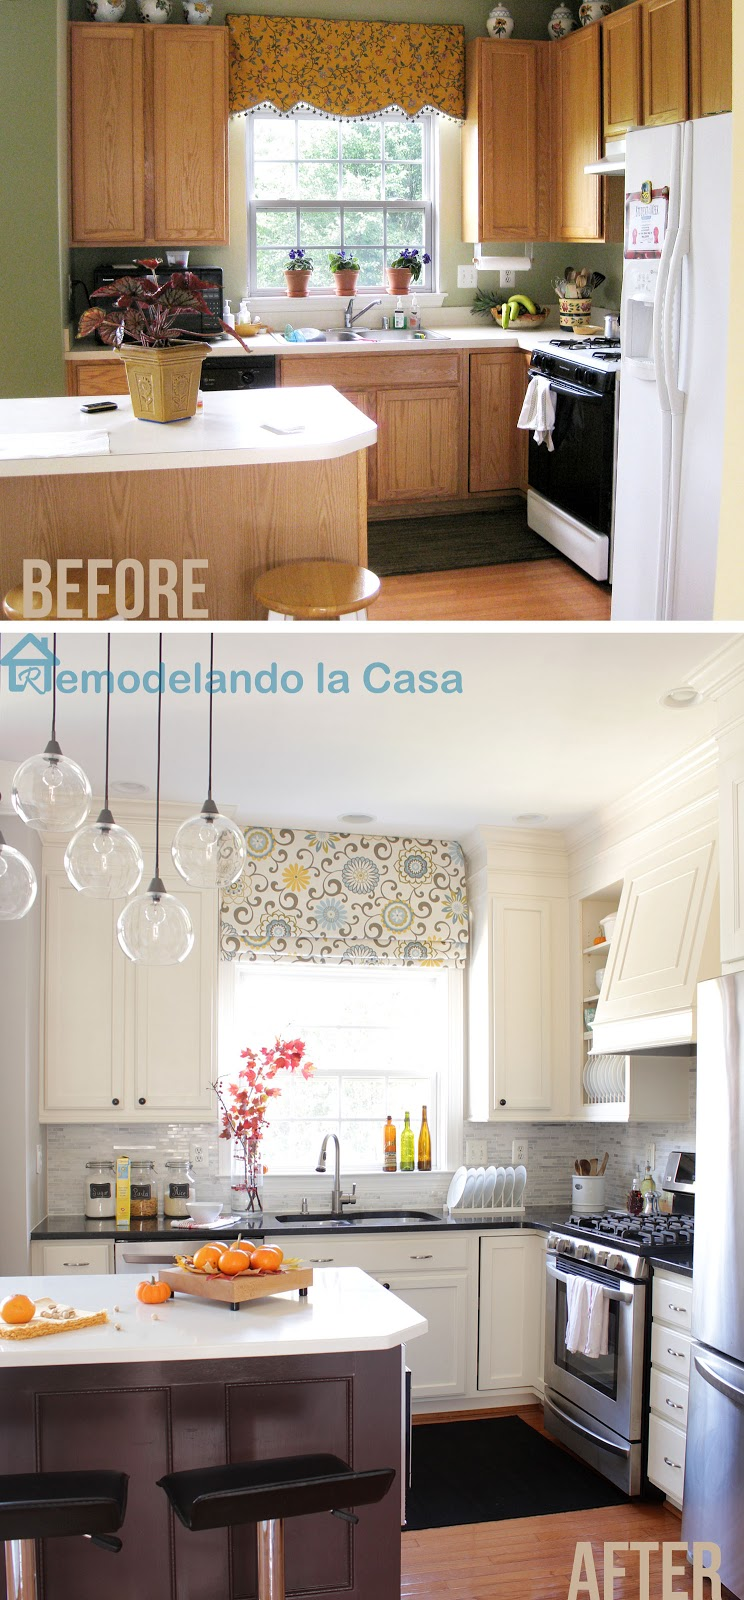 Kitchen makeover remodelando la casa for Kitchen cabinets on a budget